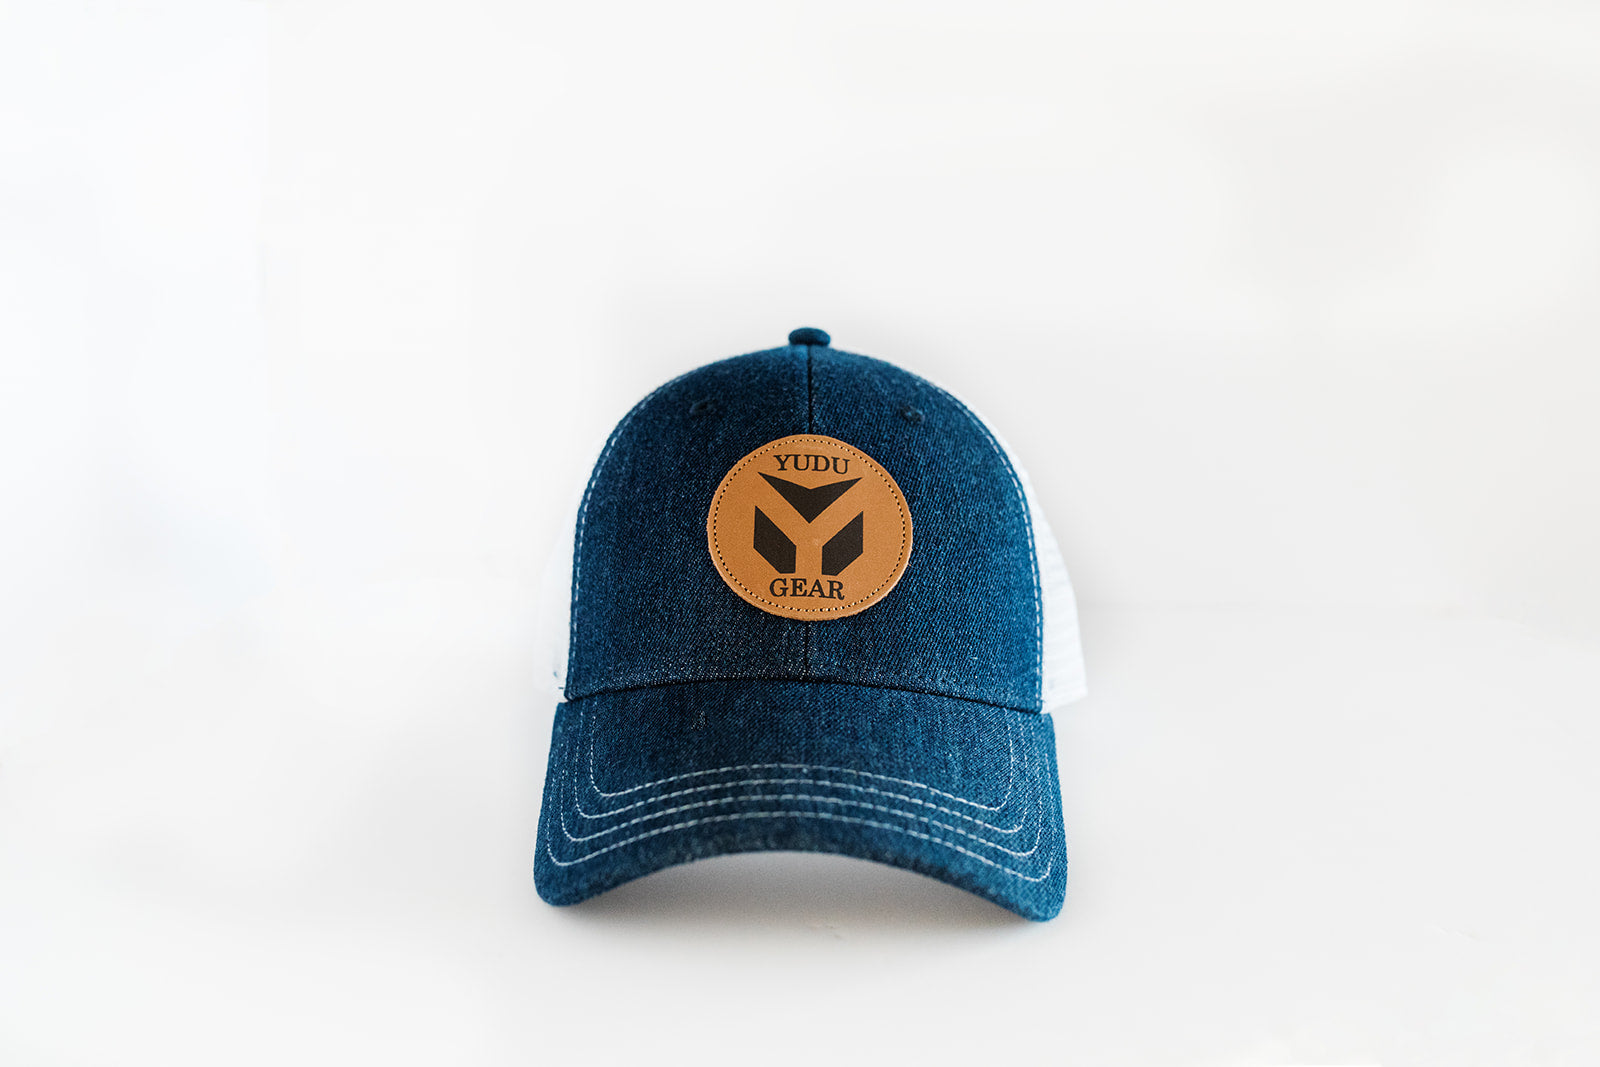 Buckskin Collection - Denim/White Snapback Trucker Hat with Leather Patch